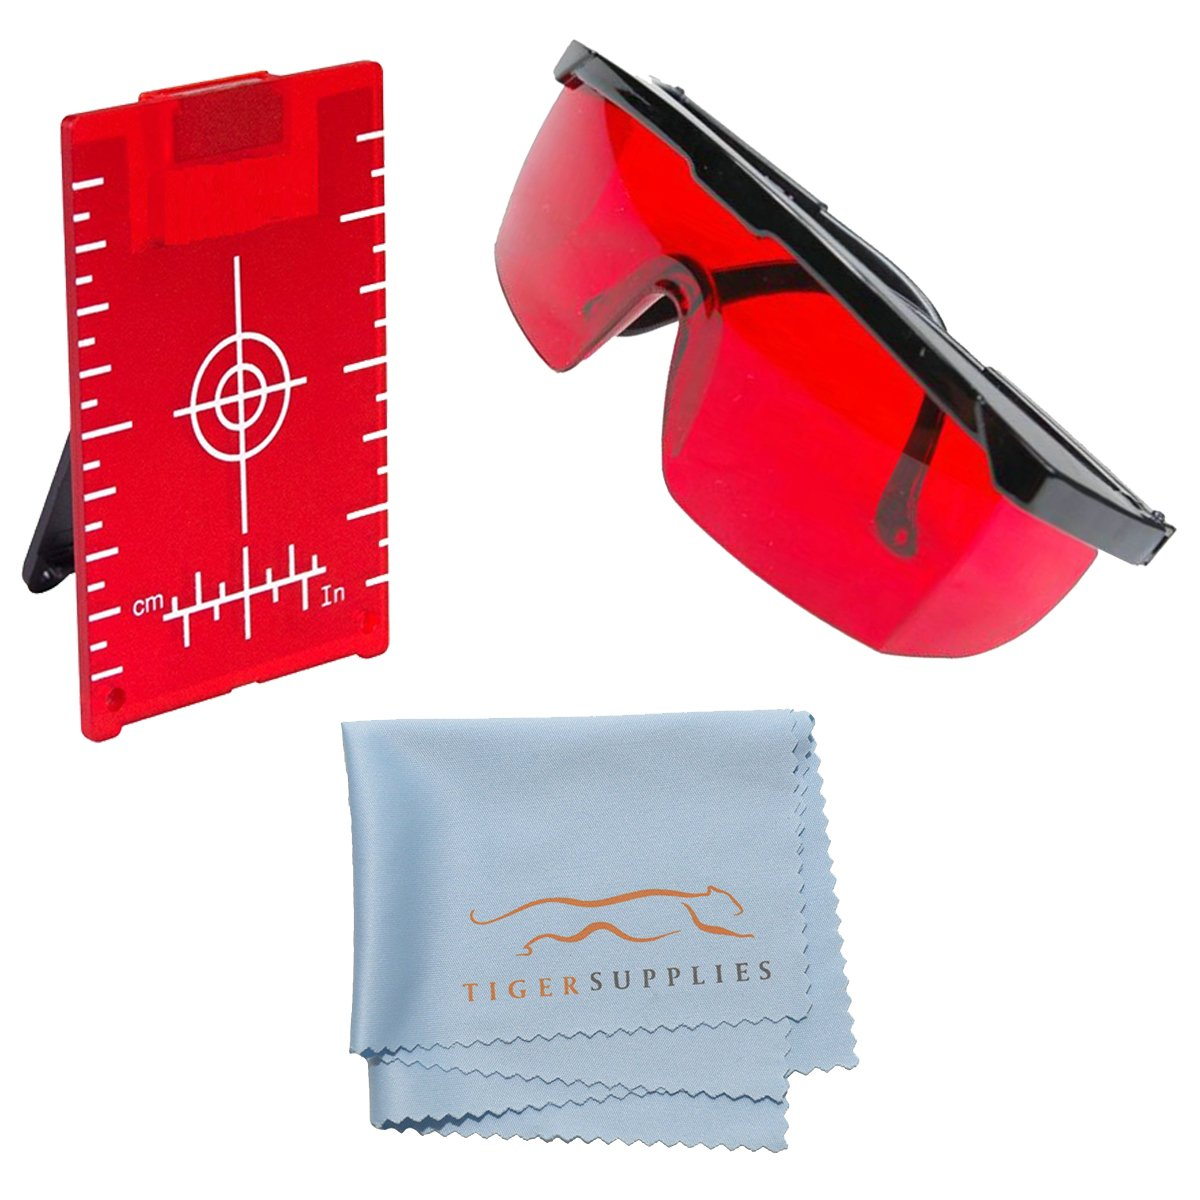 AdirPro Red Brite Laser Enhancement Kit, Includes: Red Laser Glasses for Distance Meters, Line Lasers and Rotary Lasers - Red Magnetic Floor Target Plate with Stand - Tiger Supplies Cleaning Cloth